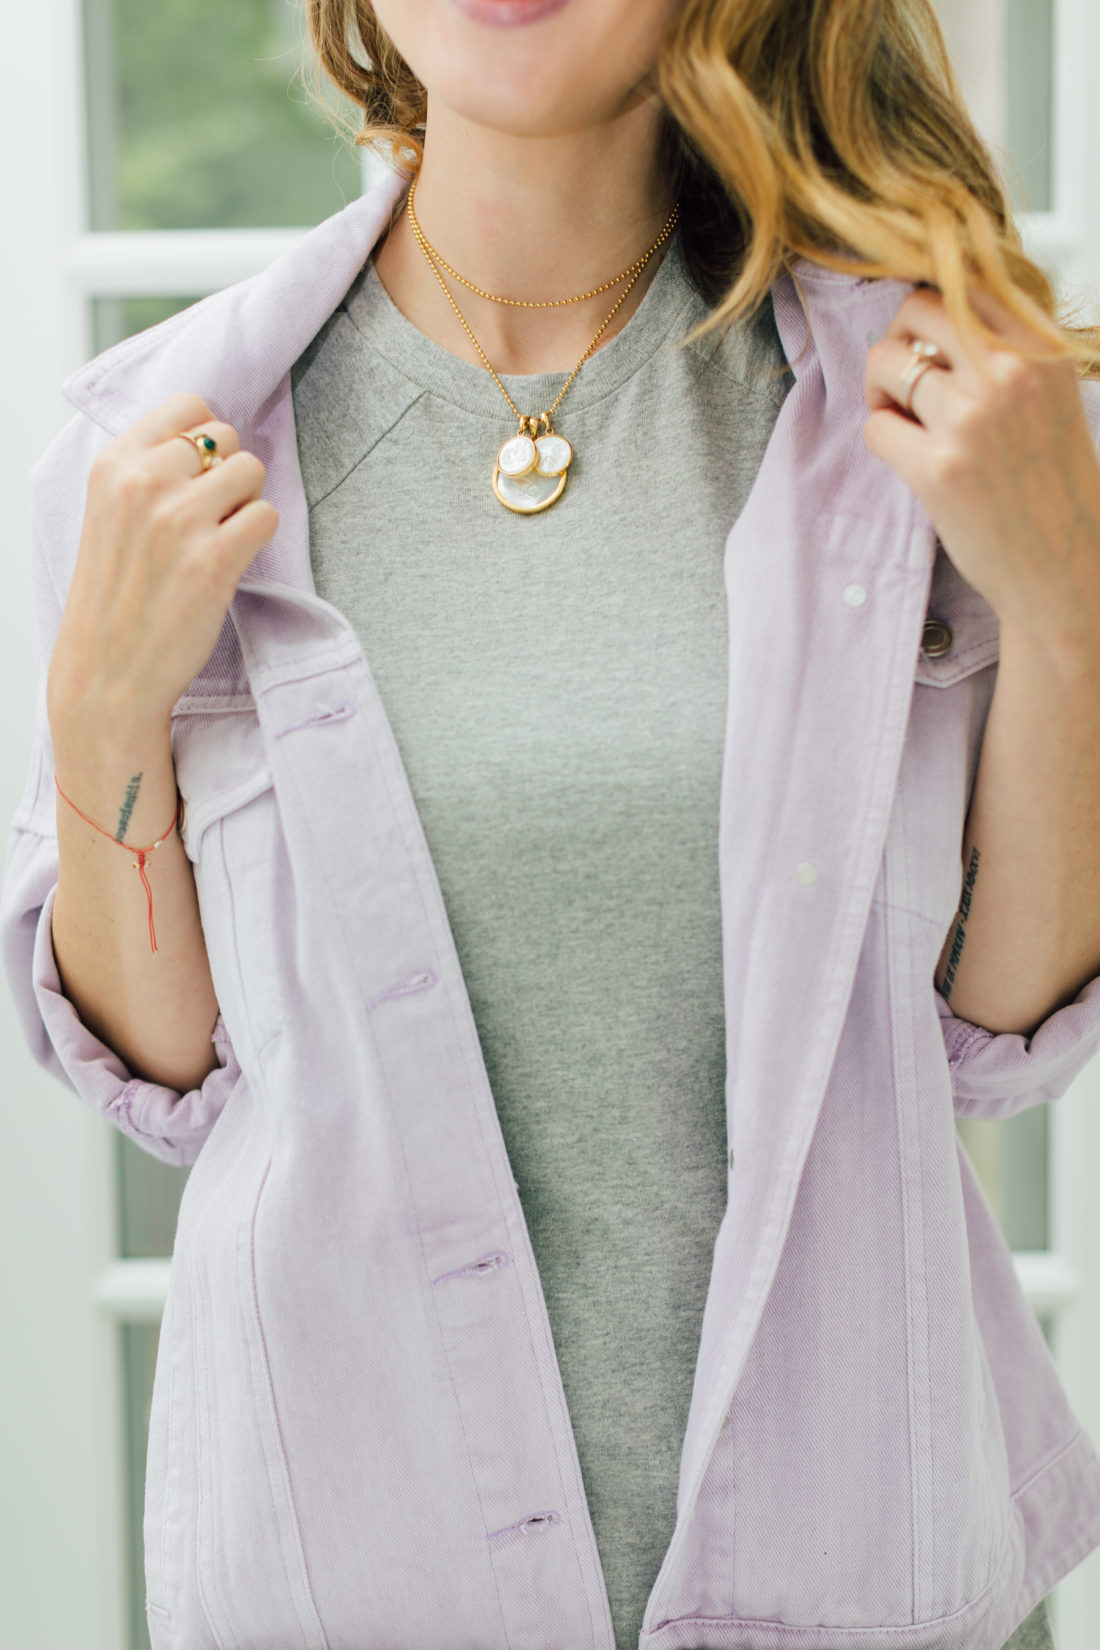 Eva Amurri Martino shares her September 2019 Obsessions which includes this ASHA Mother Of Pearl Customizable Necklace